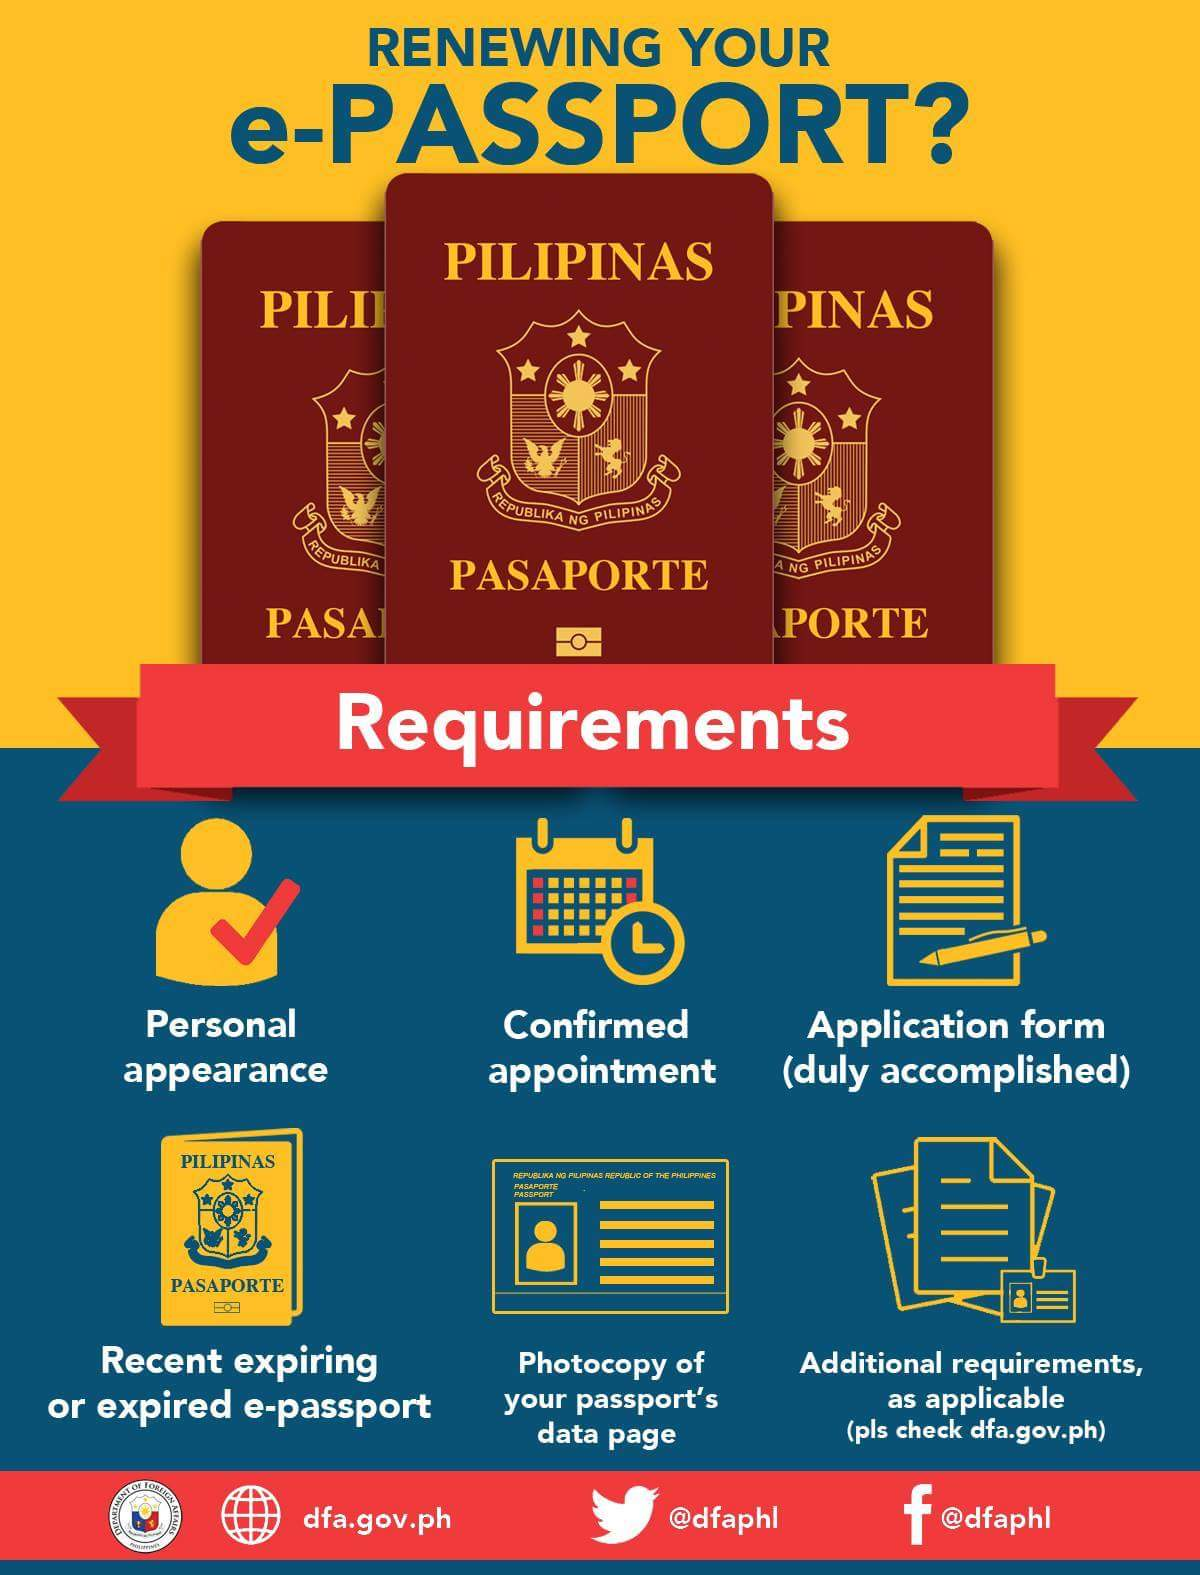 Made it through mum e passport renewal requirements renewing your e passport here are the basic requirements to download the application form falaconquin